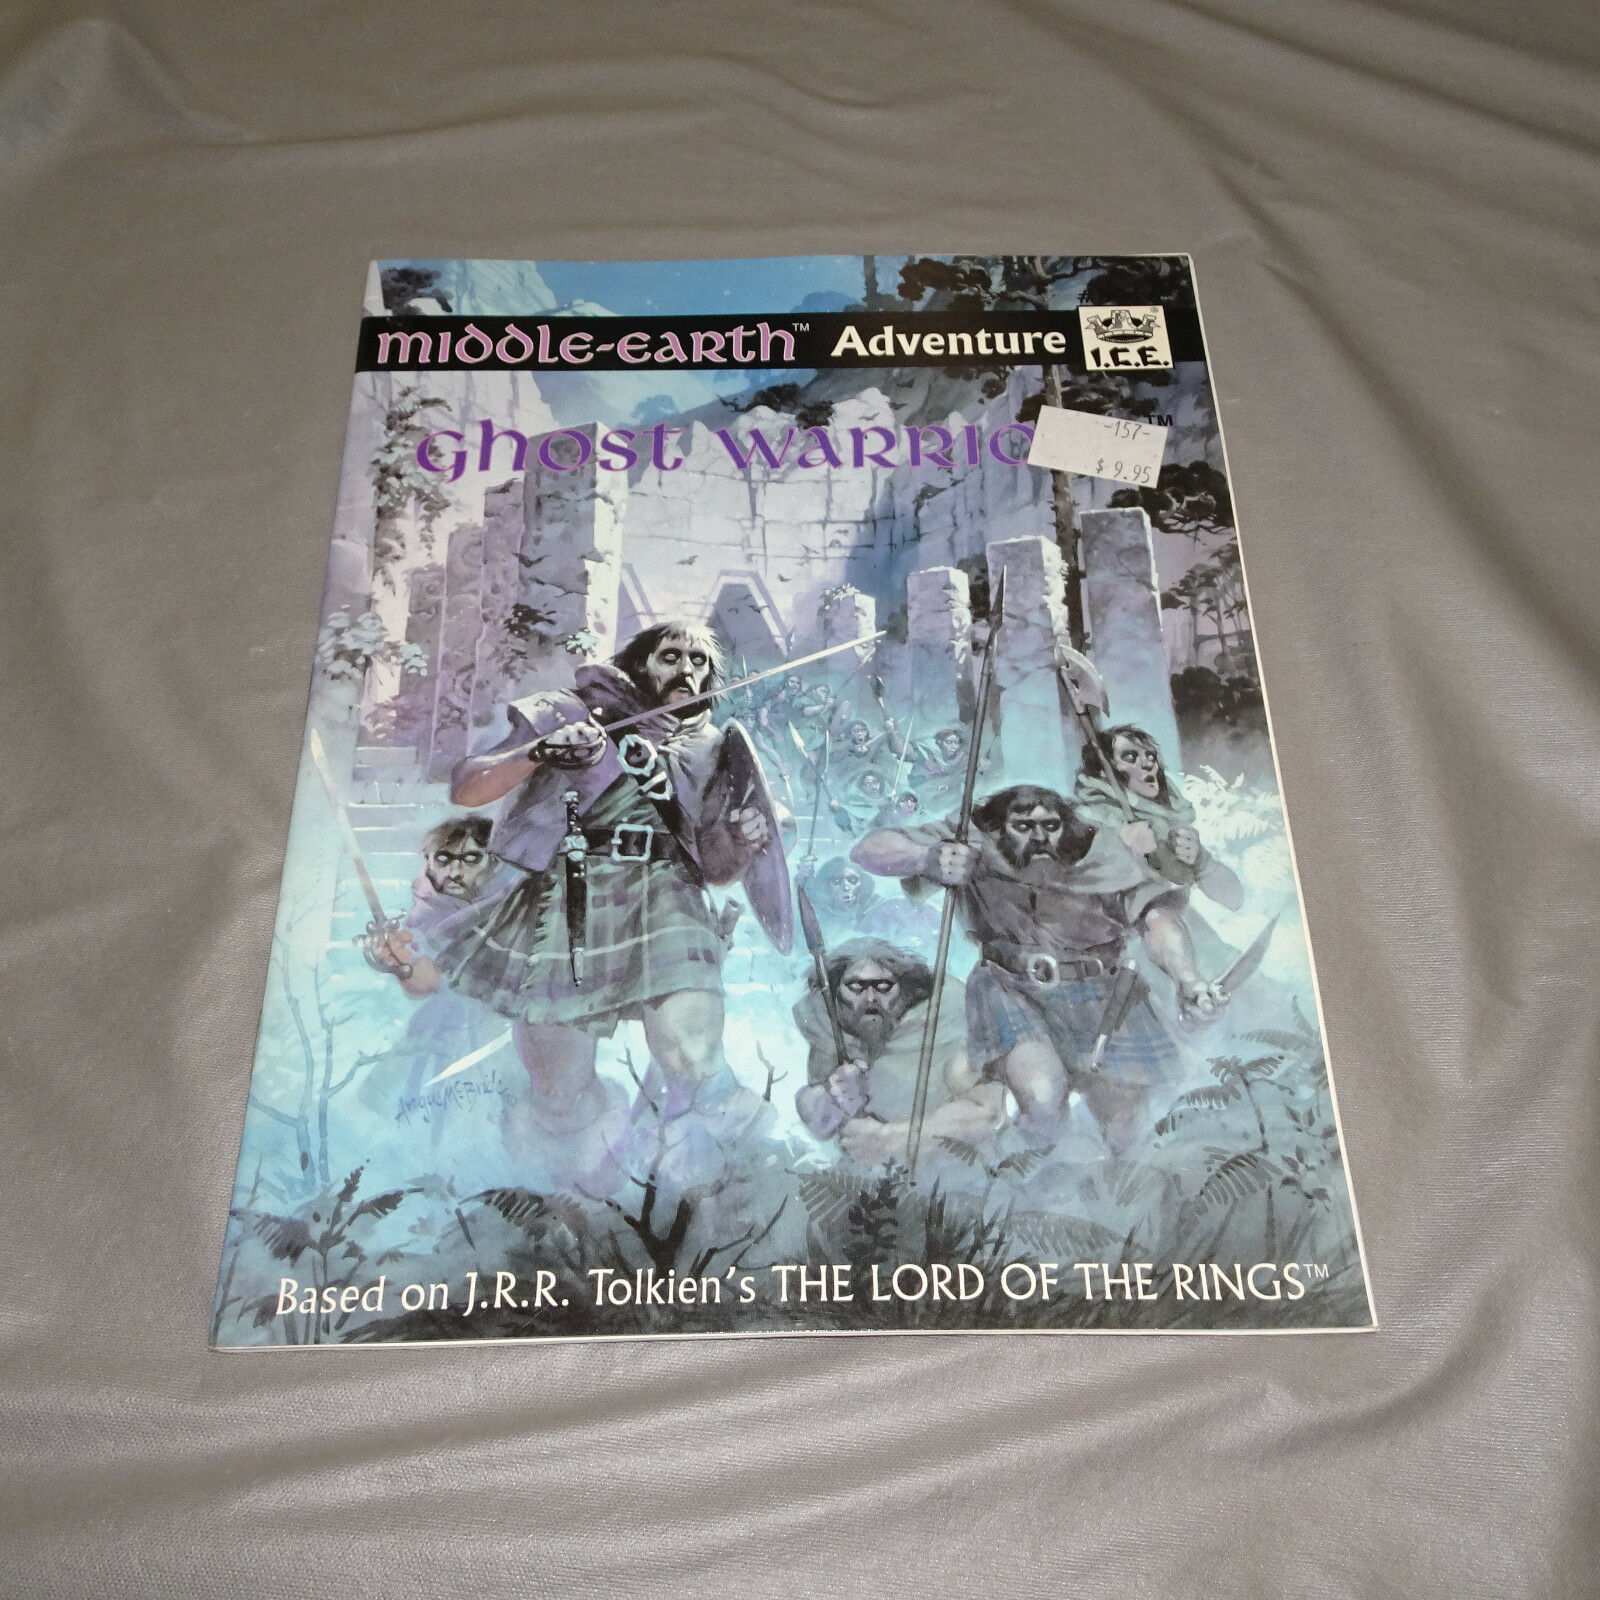 GHOST WARRIOR MIDDLE-EARTH ADVENTURE  8016  I.C.E. - 1990